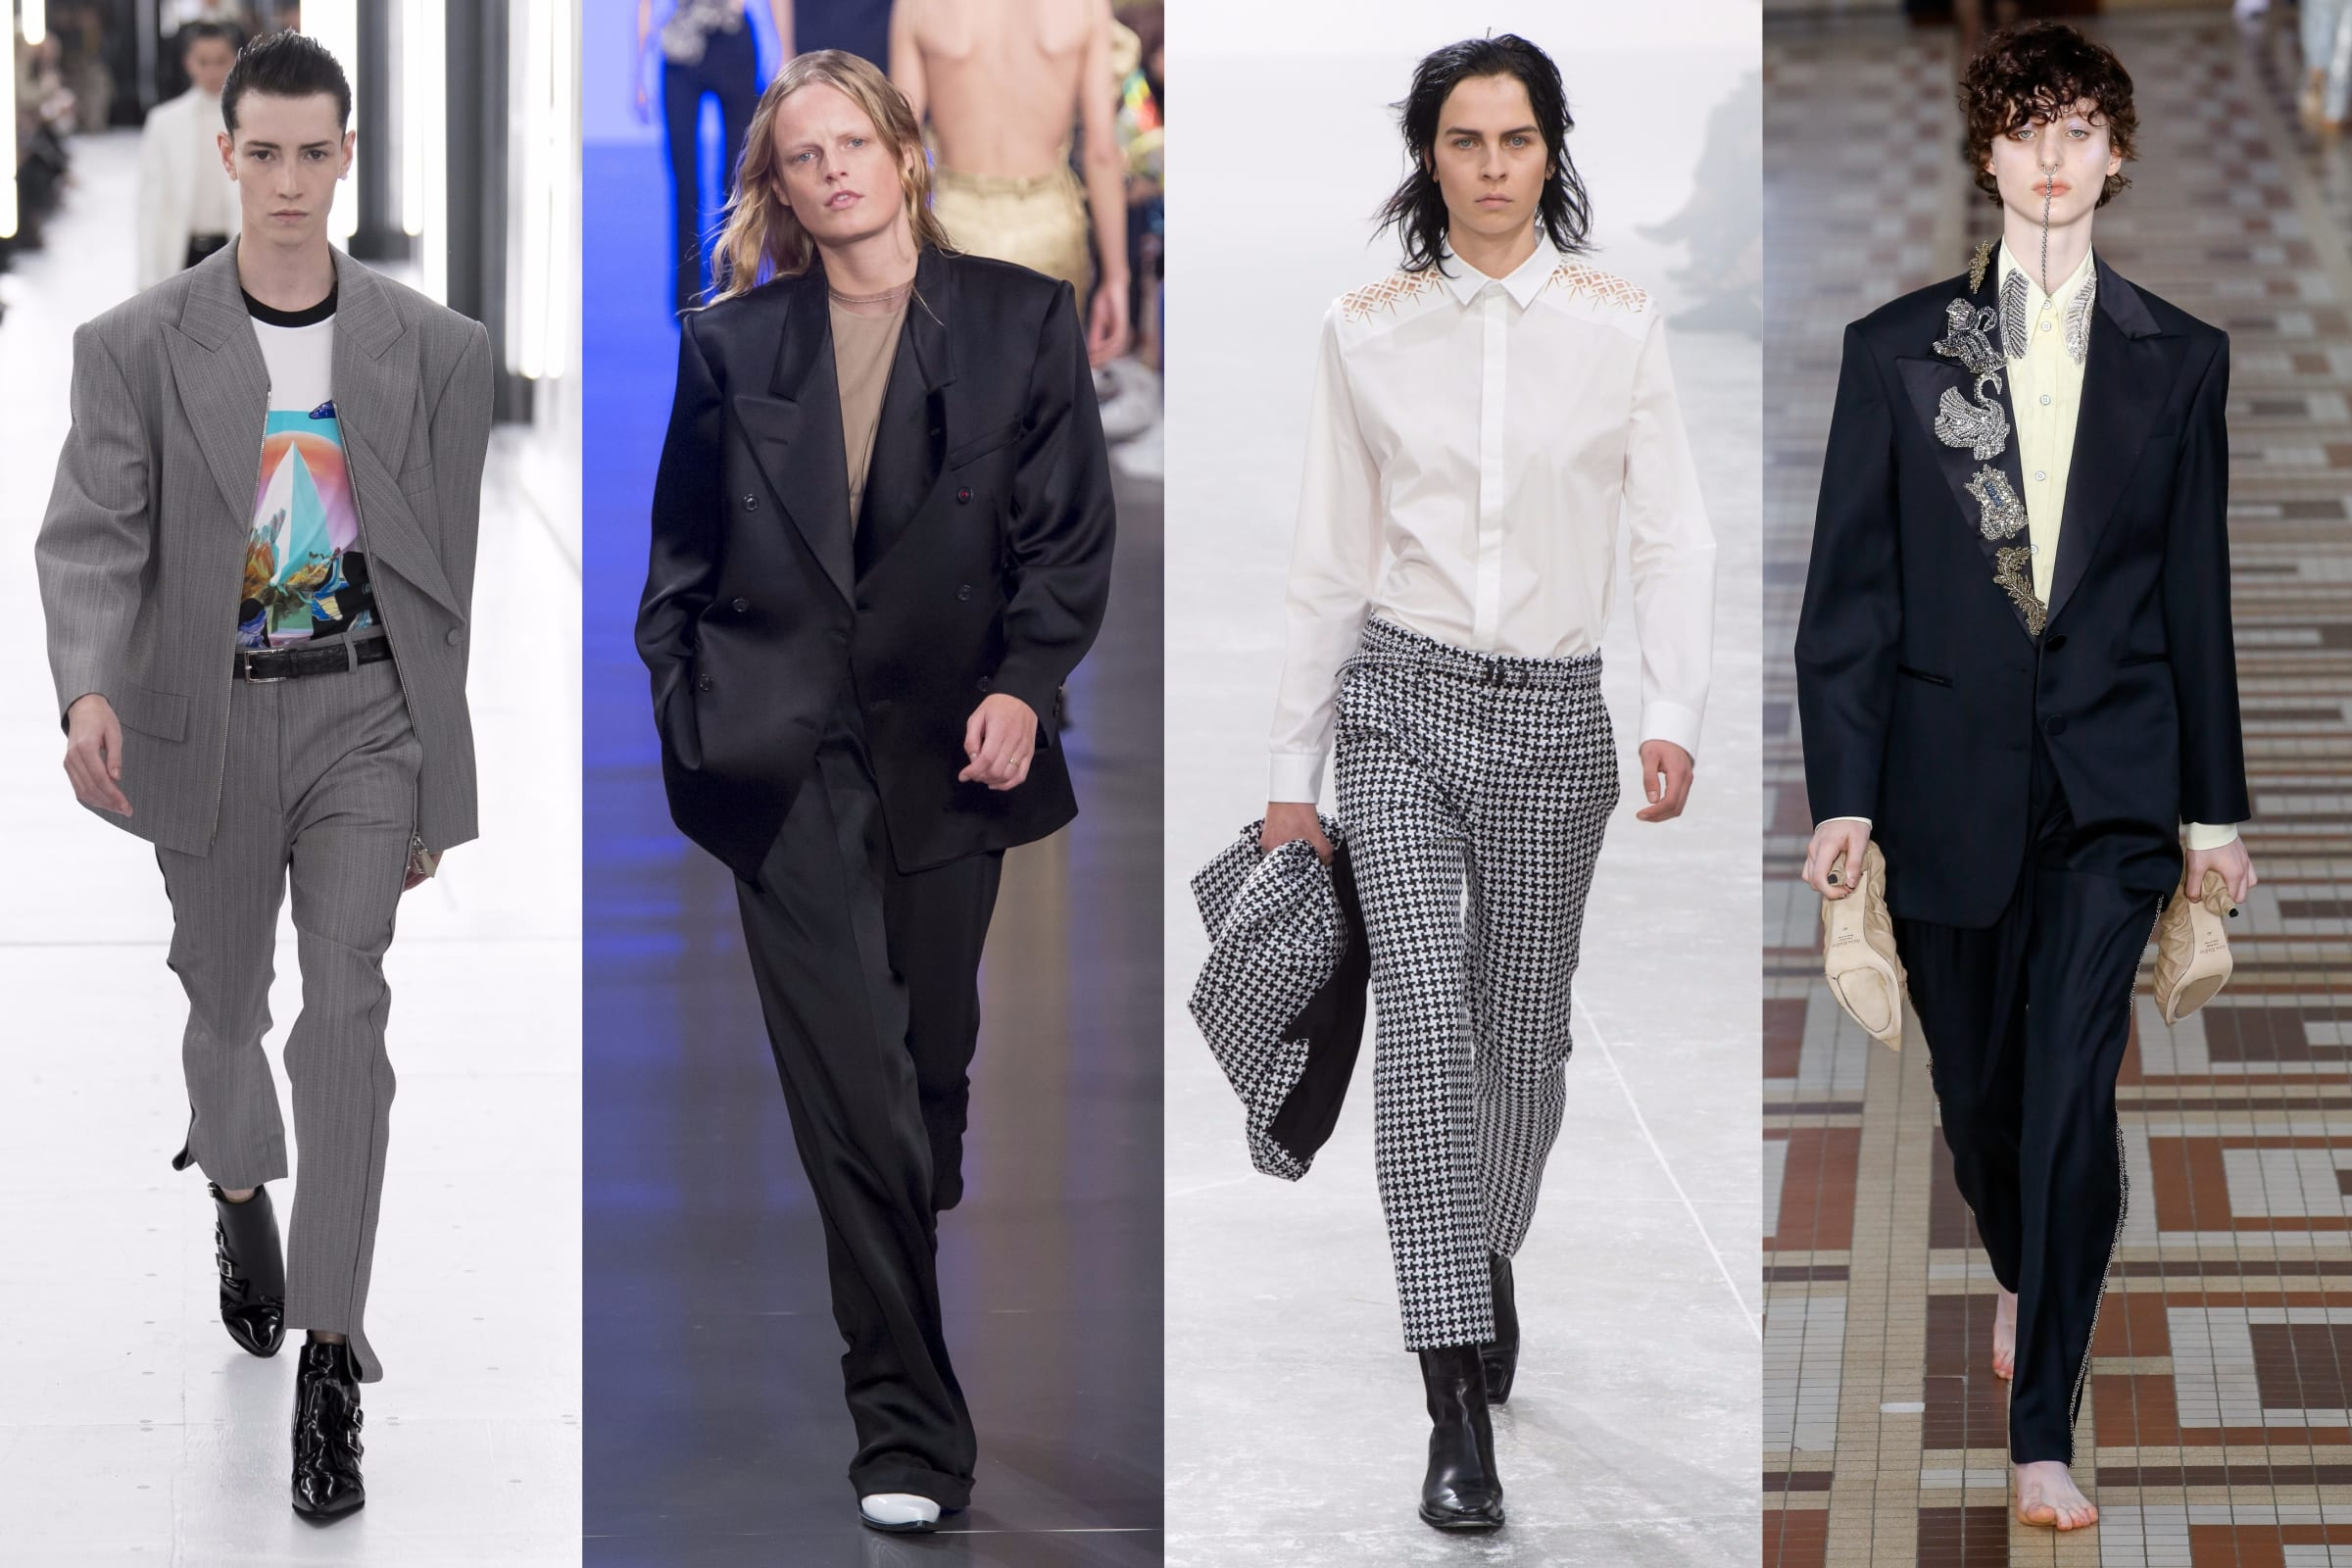 louis-vuitton-maison-margiela-haider-ackermann-acne-studios-ss19-butch-magazine-antidote